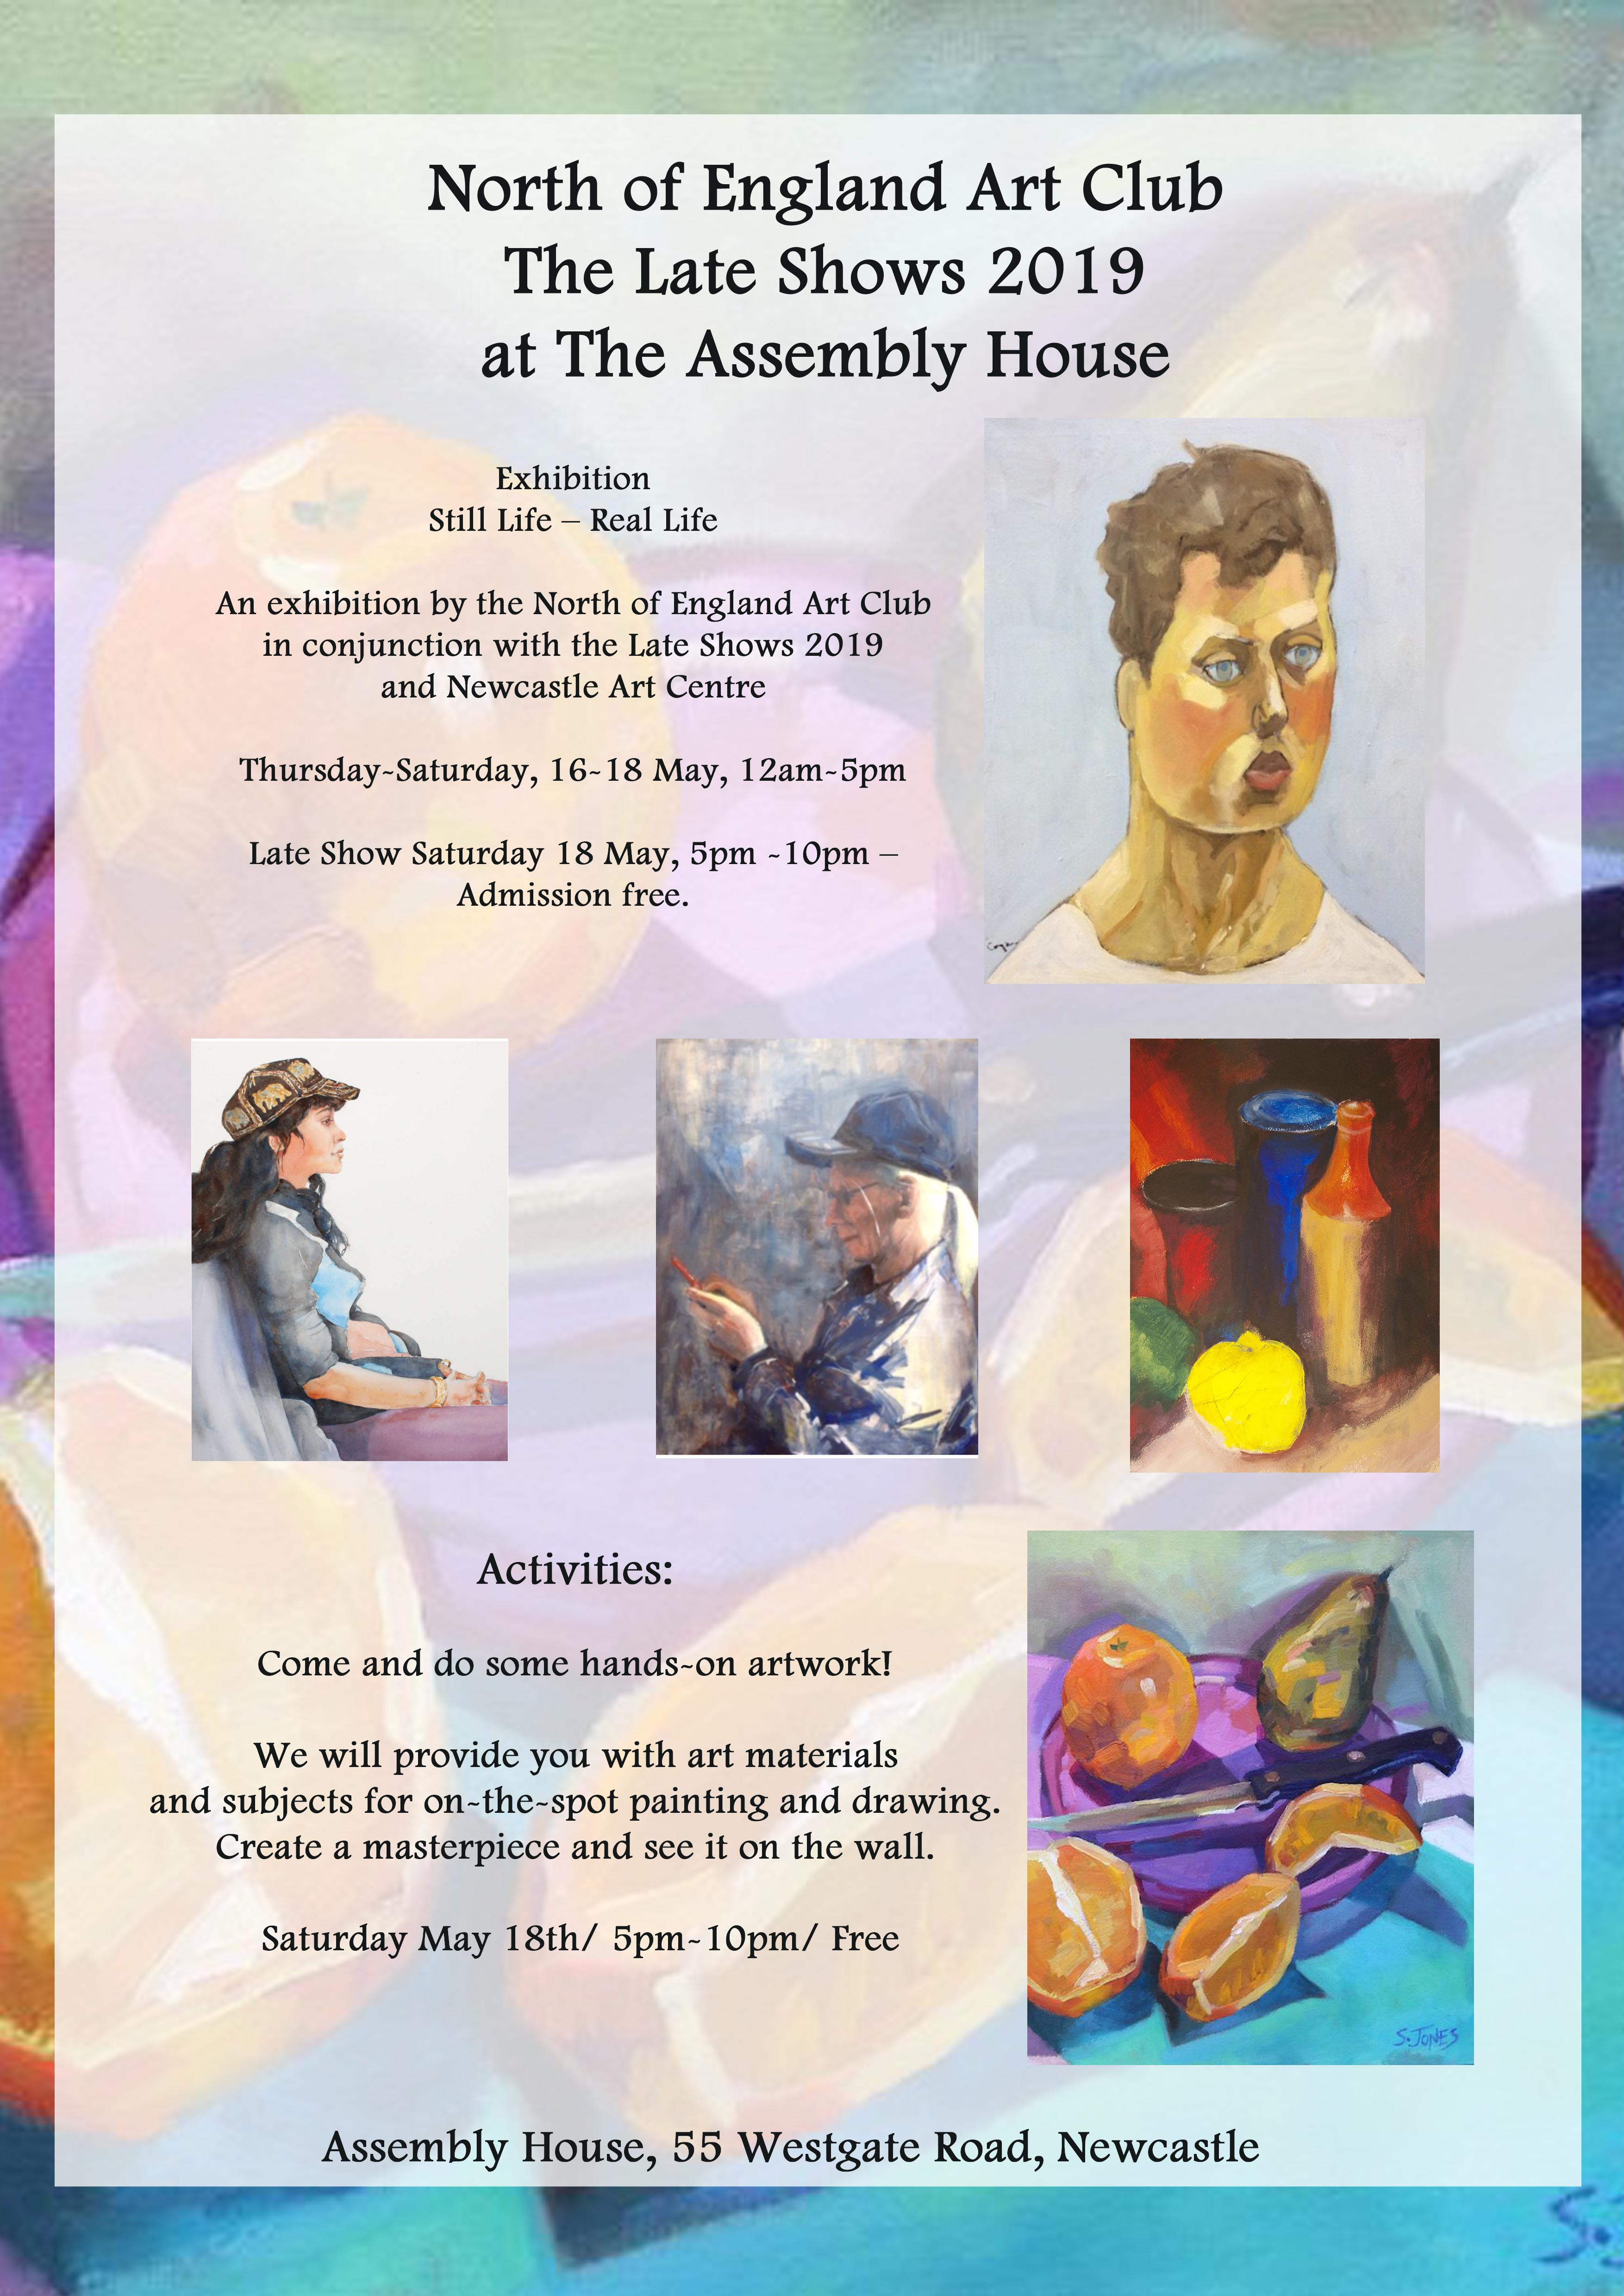 North of England Art Club at The Late Shows 2019 – Newcastle